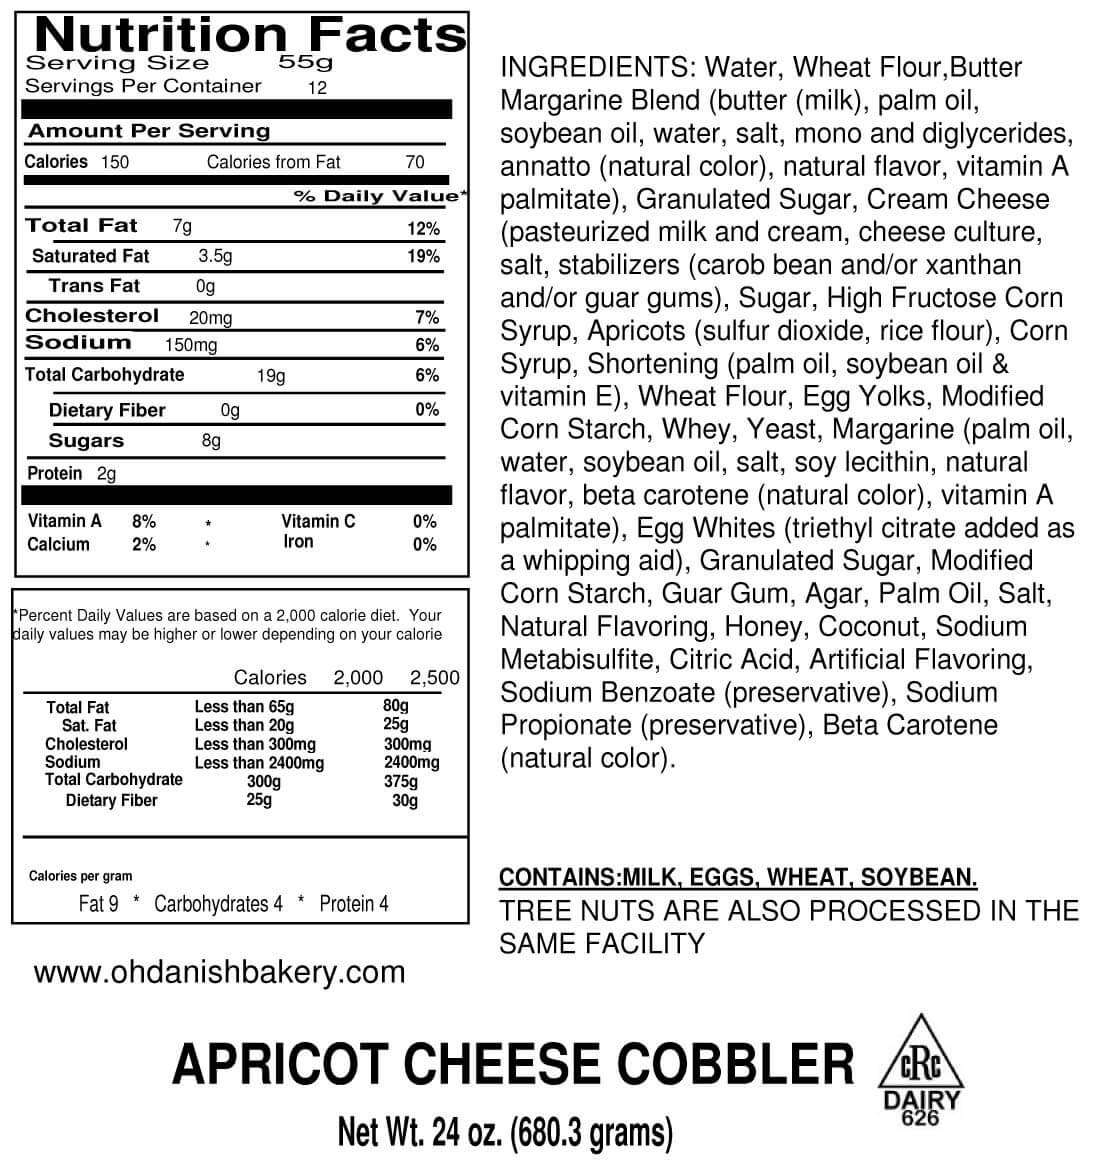 Nutritional Label for Apricot Cheese Cobbler Kringle